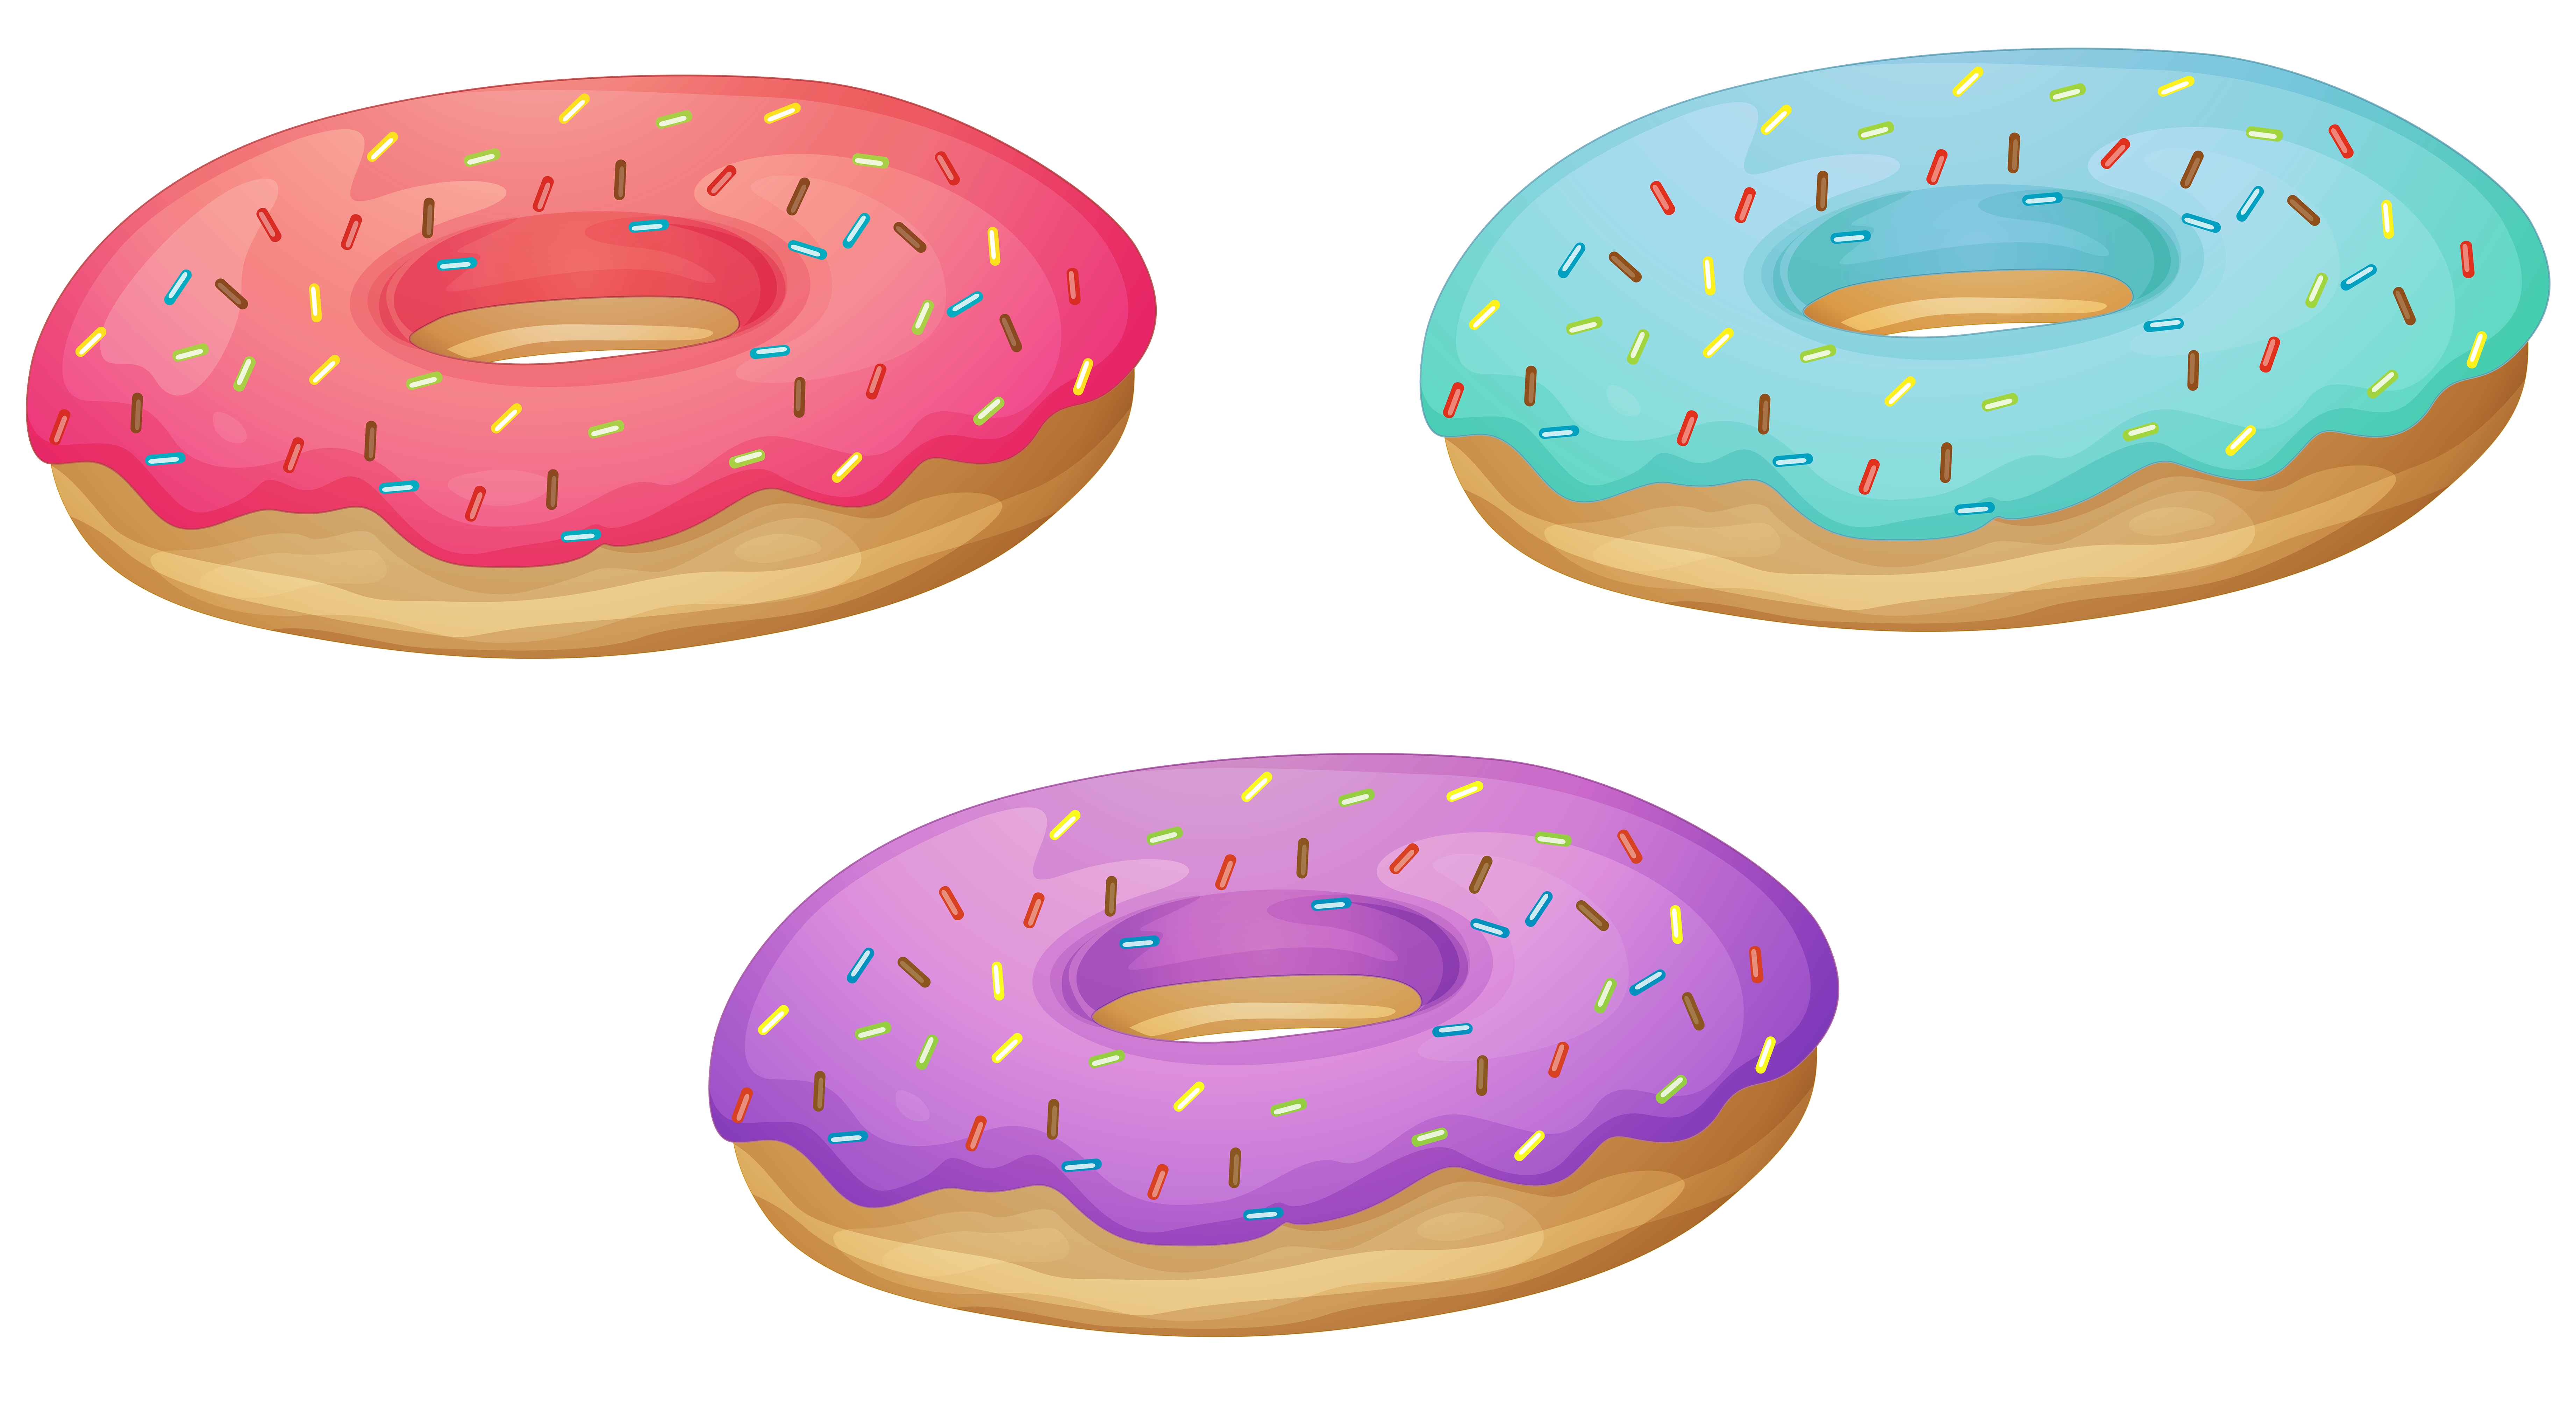 Coloring clipart donut. Donuts png image gallery